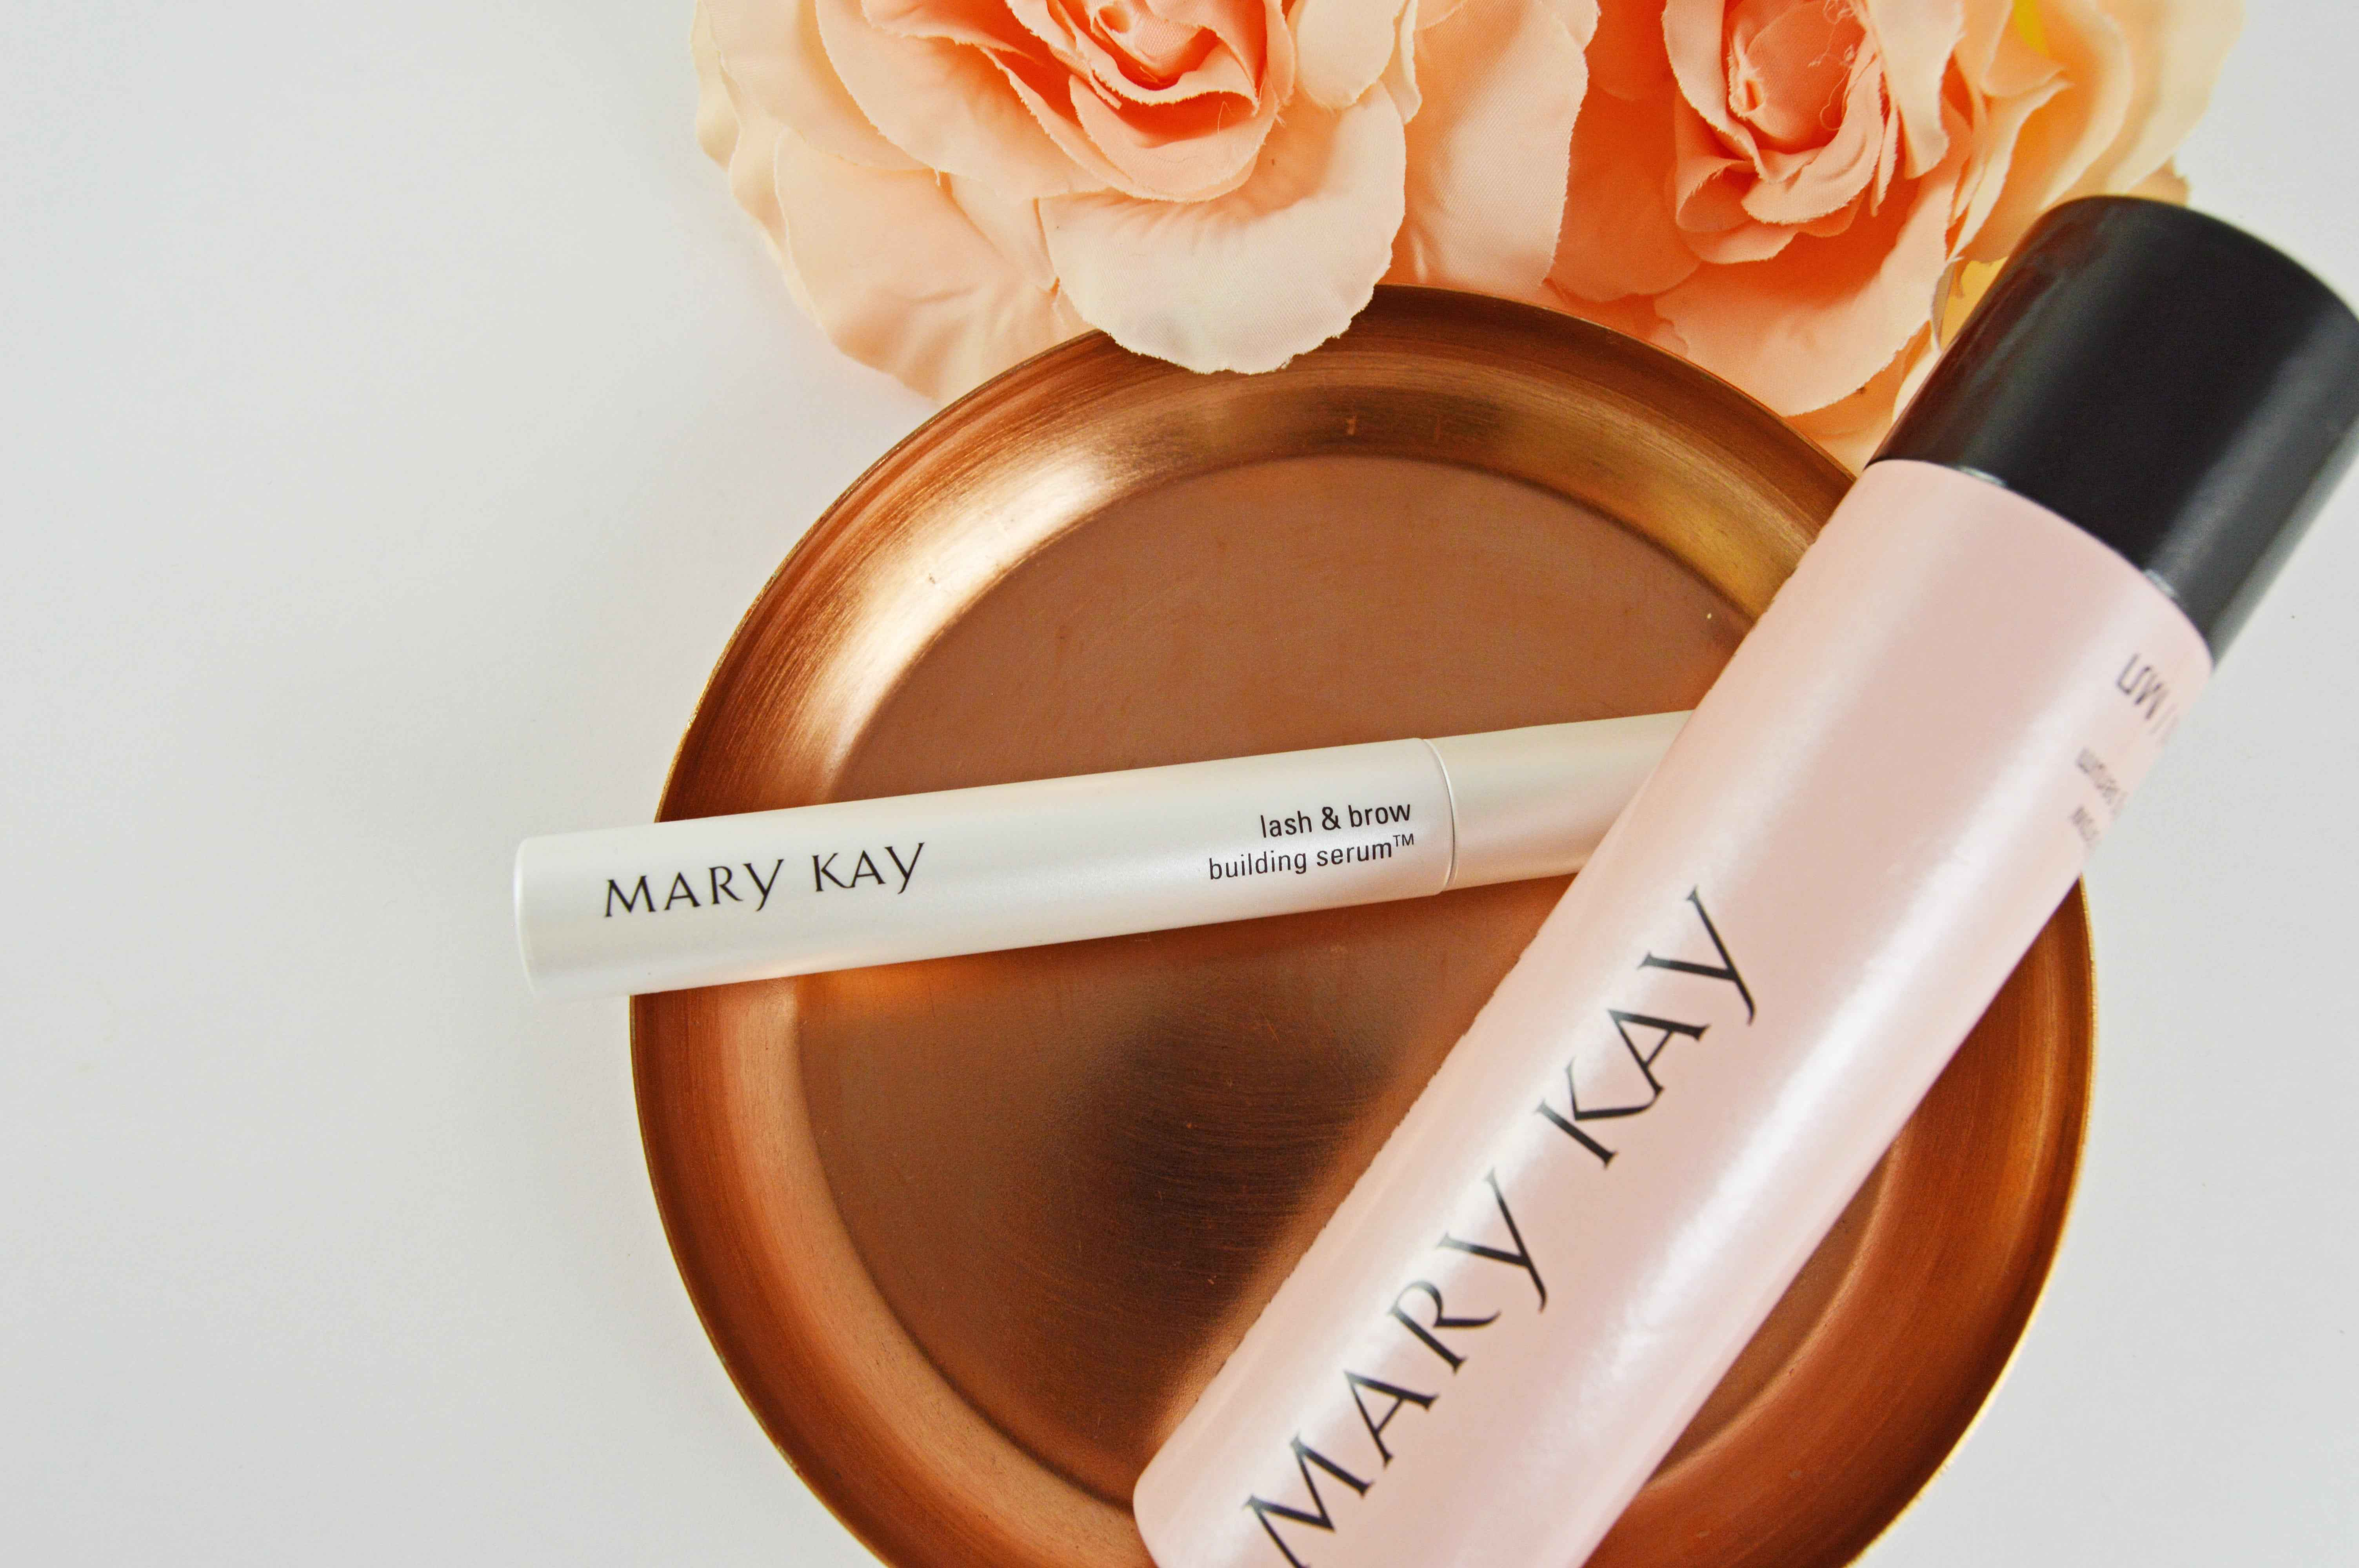 MARY KAY® LASH & BROW BUILDING SERUM